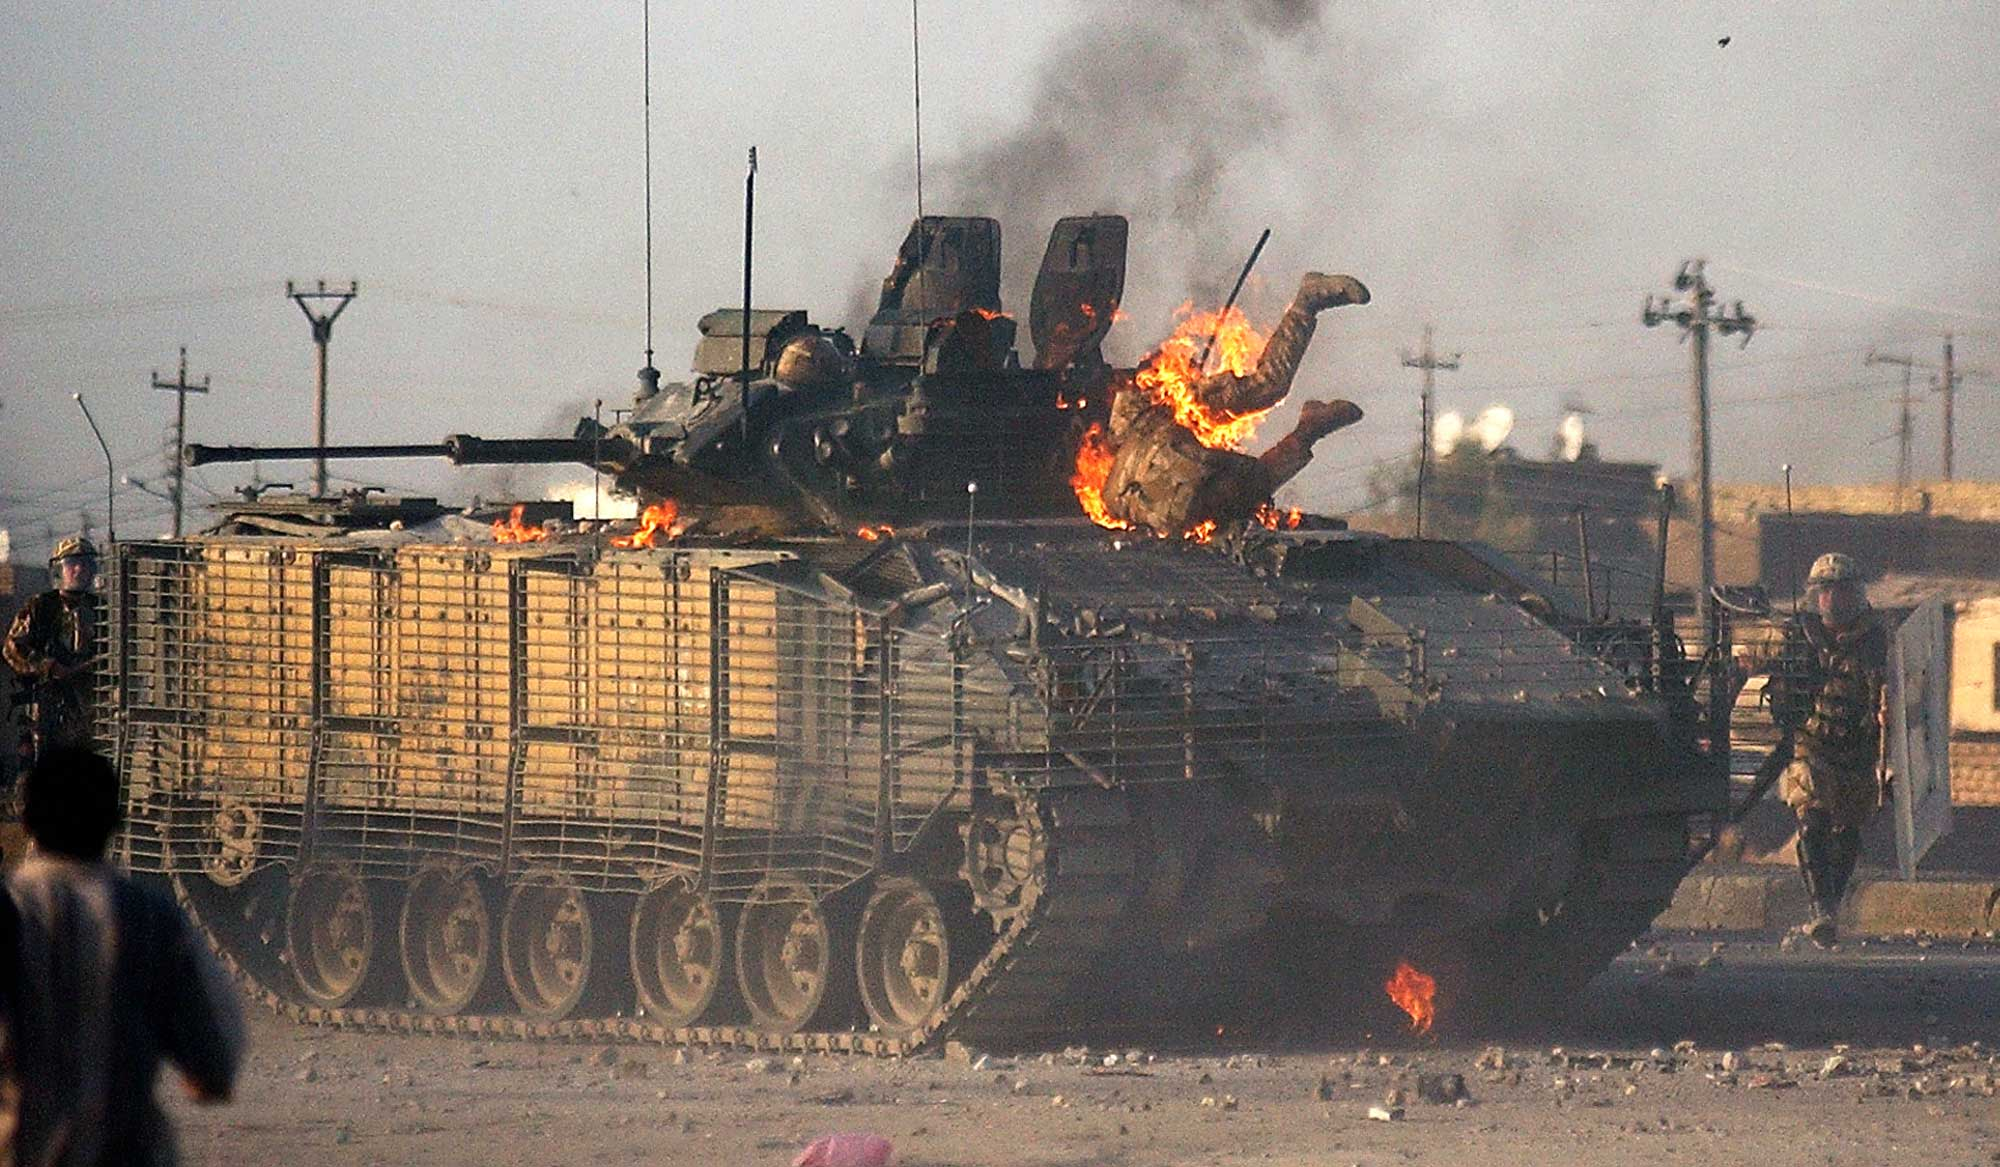 """<b>Nabil al-Jurani, Sept. 19, 2005                                   </b>                                   A British soldier makes his way out of a burning Warrior fighting vehicle in Basra, 340 miles southeast of Baghdad.                                    I remember that day. I remember the risk, fear and danger with mixed feelings: """"A man burns in front of my eyes, what should I do?"""" A part of me says, """"This is something that I do not care about,"""" but the other part says, """"The man is suffering. Go and save him. I feel his pain. Oh my Lord, why did you choose me to witness this? I am too weak for this."""" Harder than that, insurgents surrounded me — I had to pretend to be joyful but my heart was breaking.                                    After taking this image, I came to hate fire and I avoid the kitchen. I can't stand seeing my wife cooking. Sadness hung over me for a long time — I hope to one day see the soldier and check on him."""